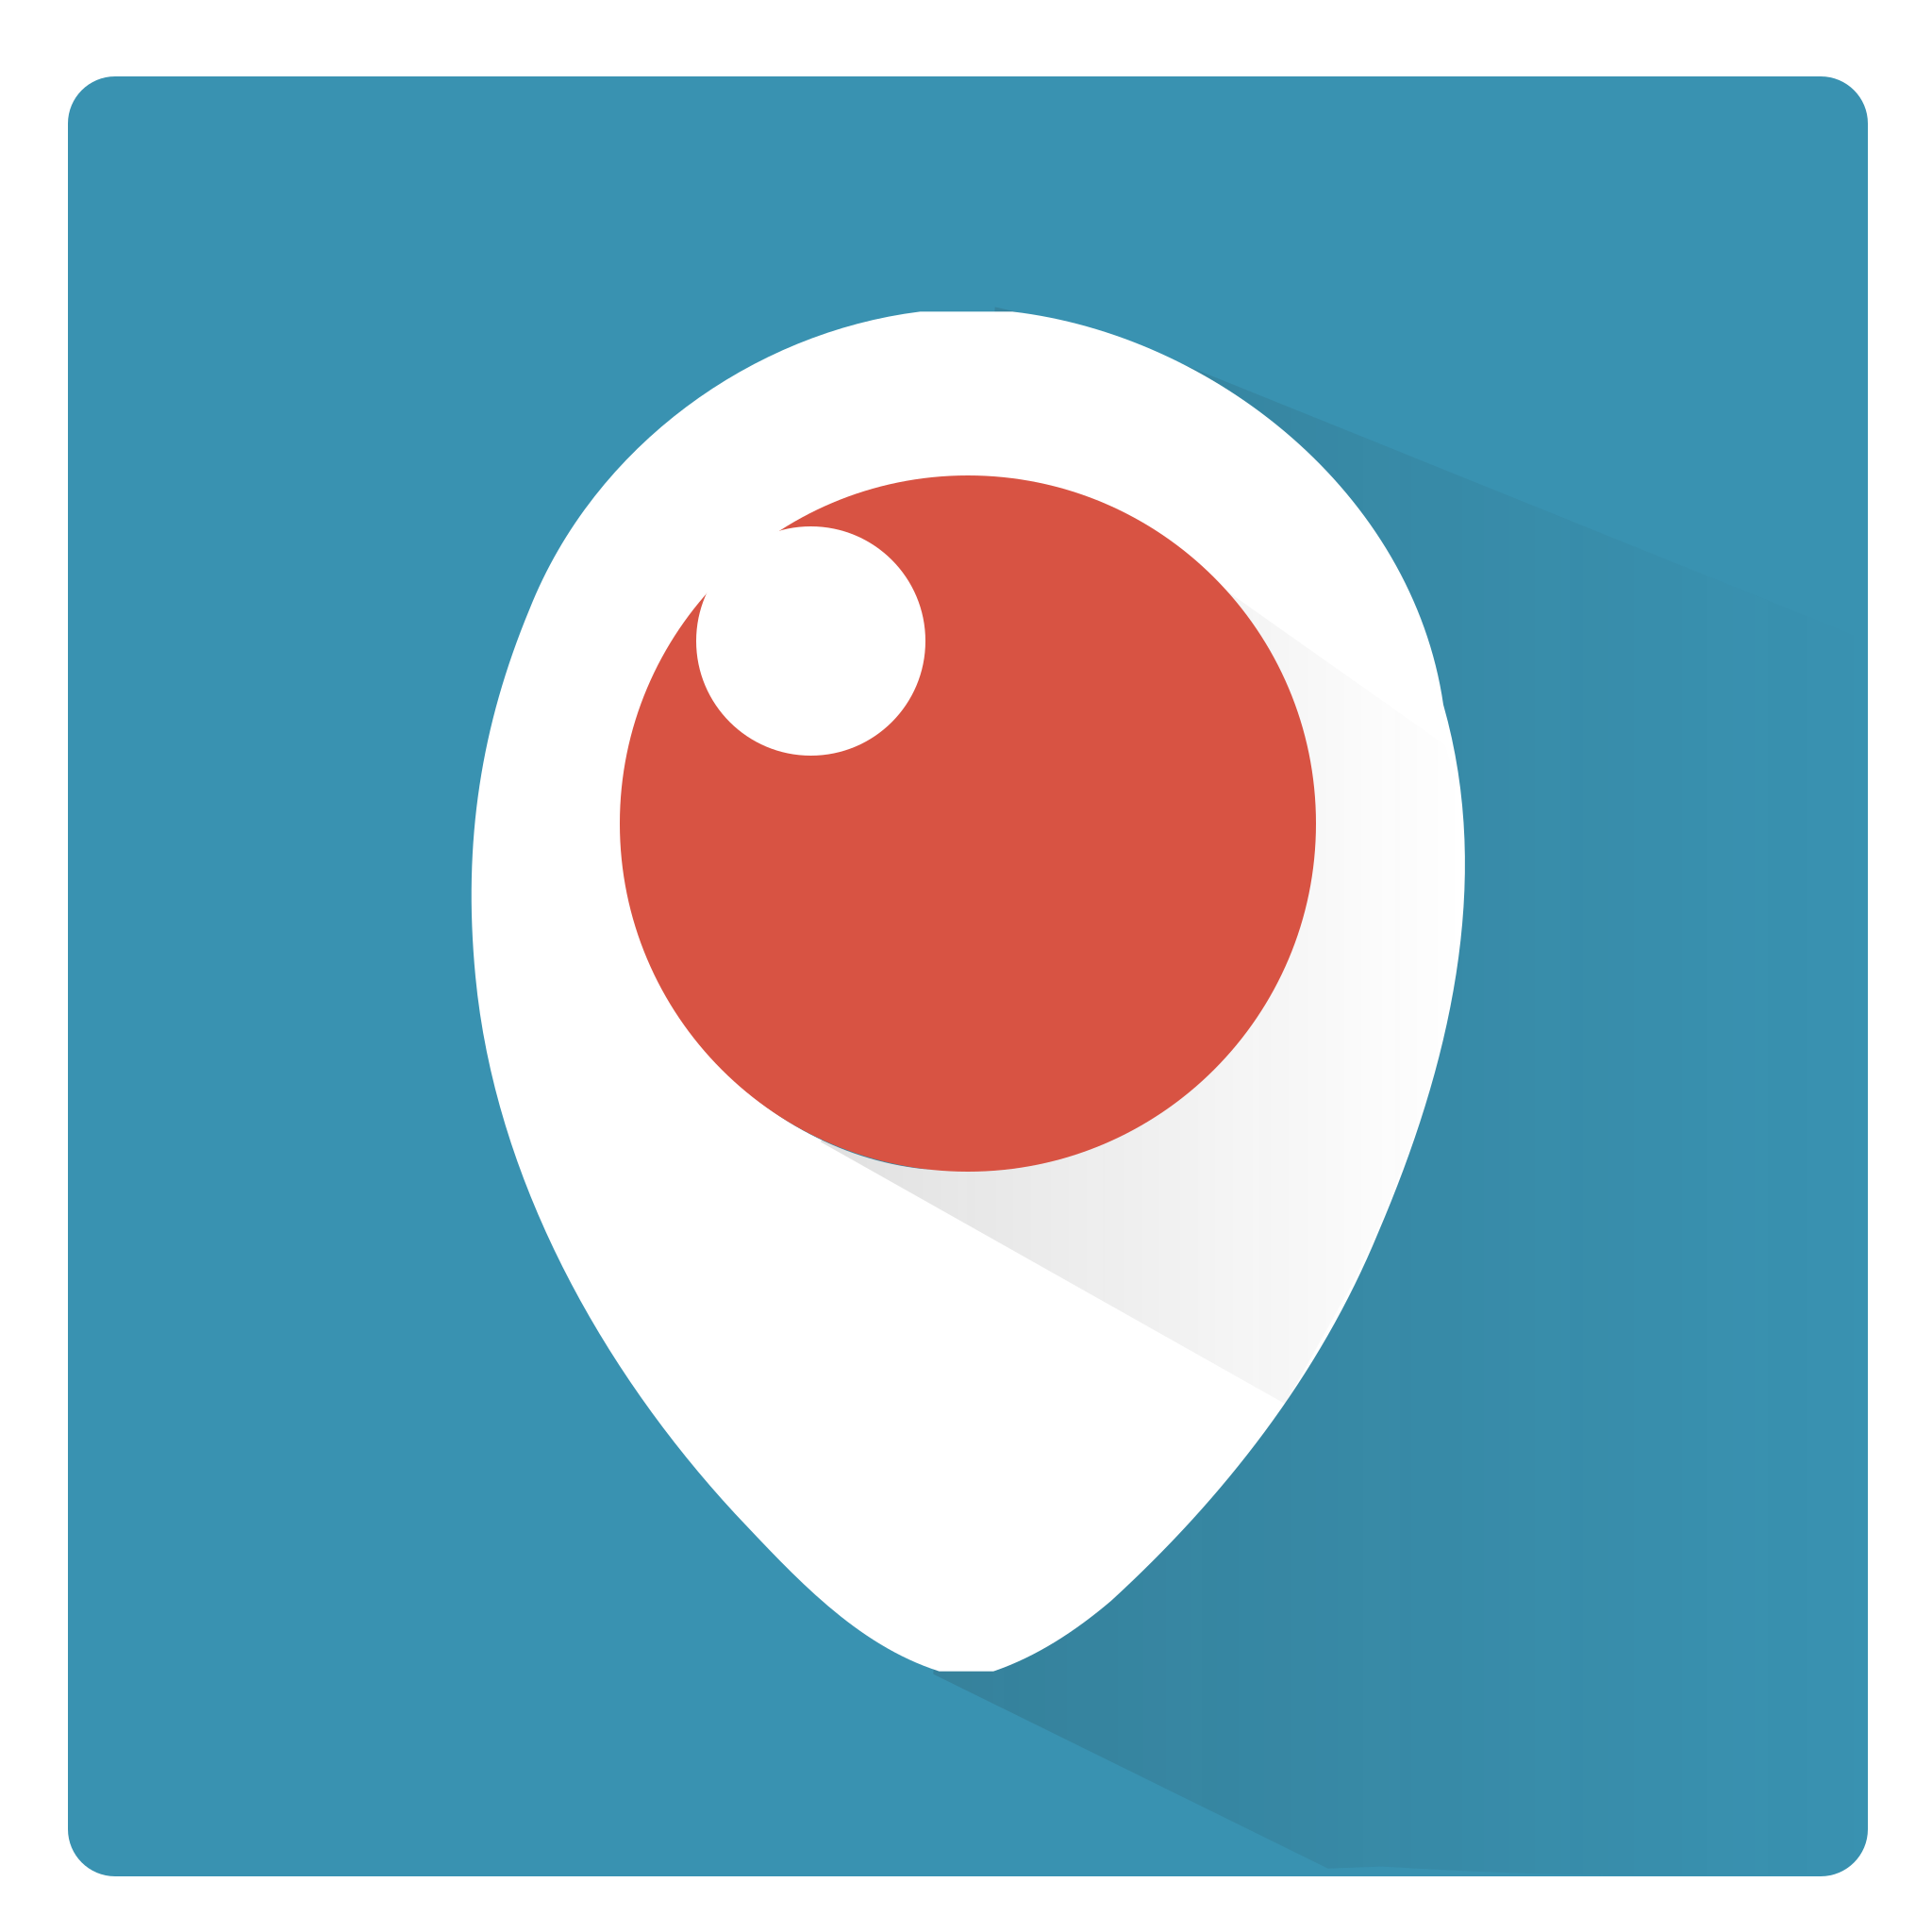 Vector Periscope Png Free Download image #34351